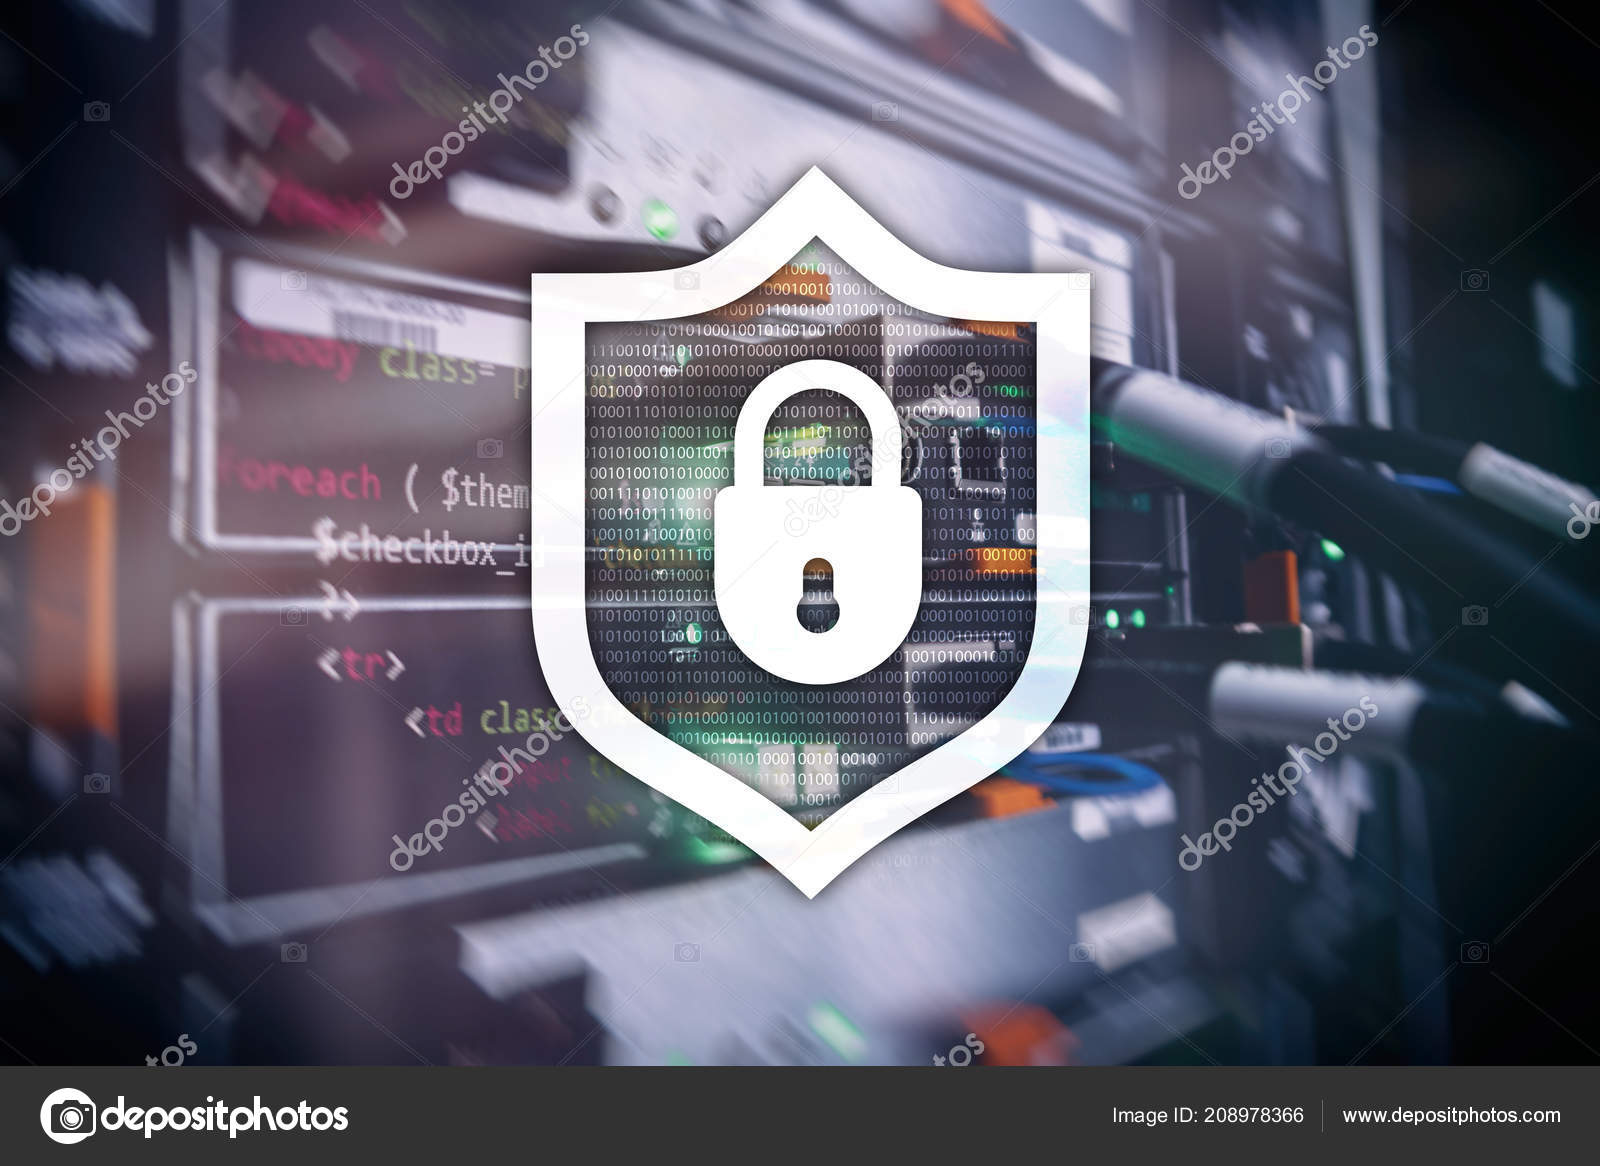 Cyber Protection Shield Icon Server Room Background Information Circuit Board Virus Text Stock Image On Security And Detection Photo By Funtap